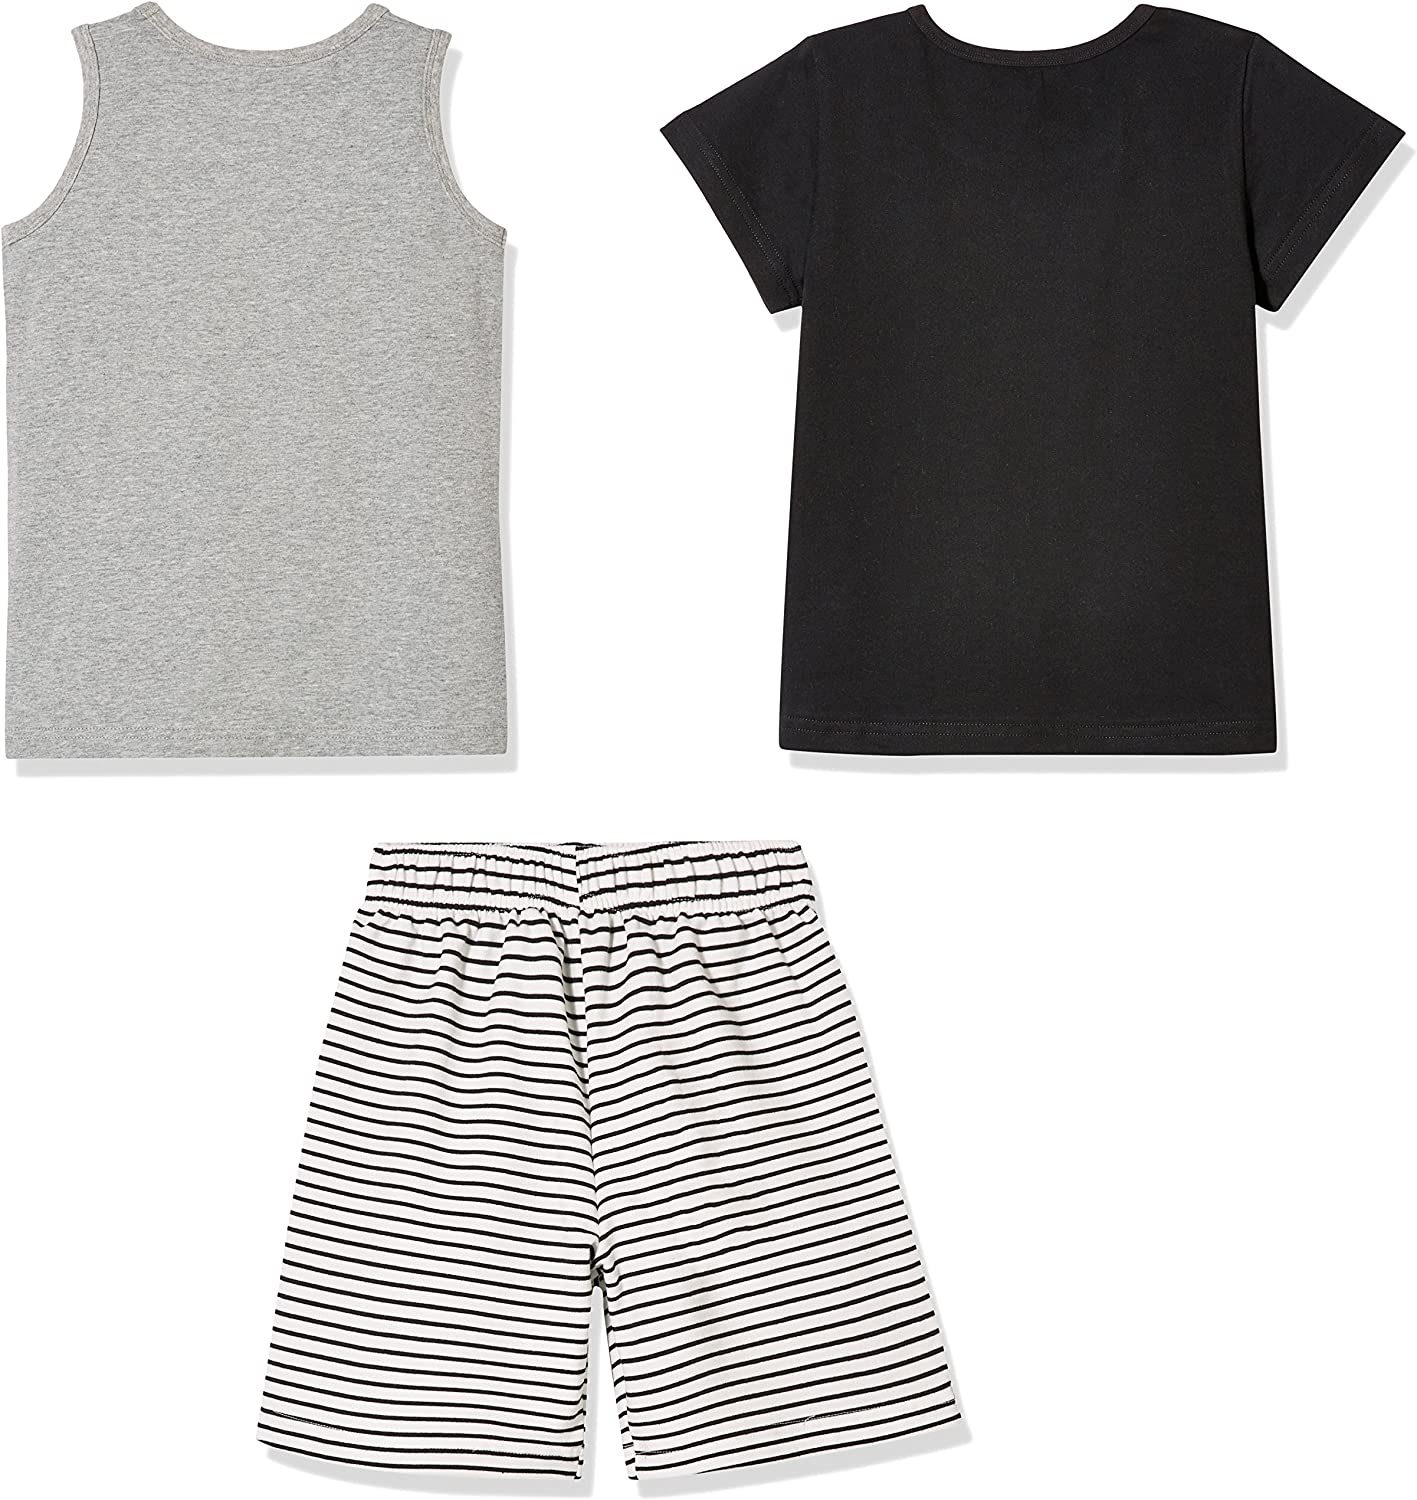 Grey Tank Top and Black Stripe Shorts for Toddlers and Little Boy Sprout Star 3-Pcs Set Cotton Solid Black T-Shirt